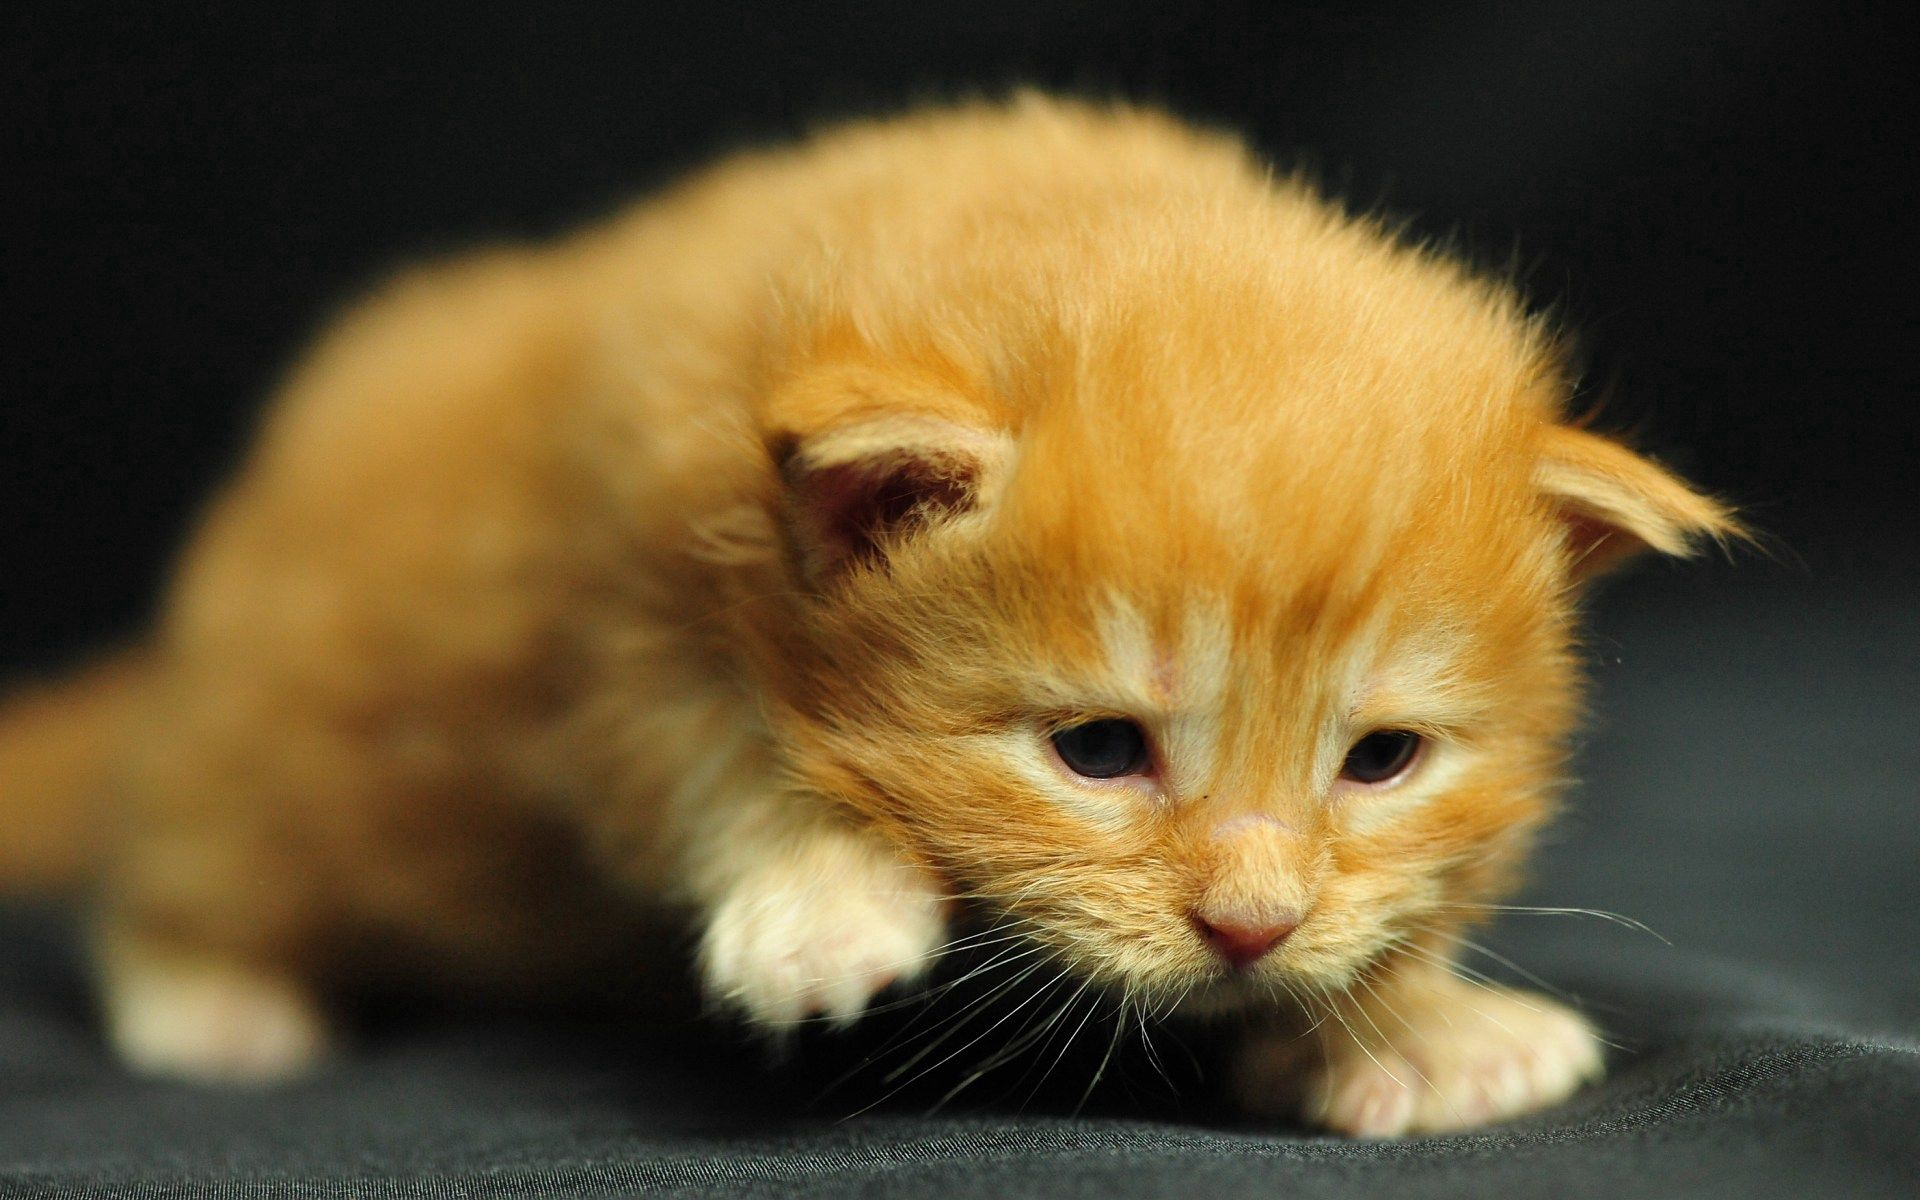 149603 download wallpaper Animals, Kitty, Kitten, Kid, Tot, Striped, Stroll screensavers and pictures for free